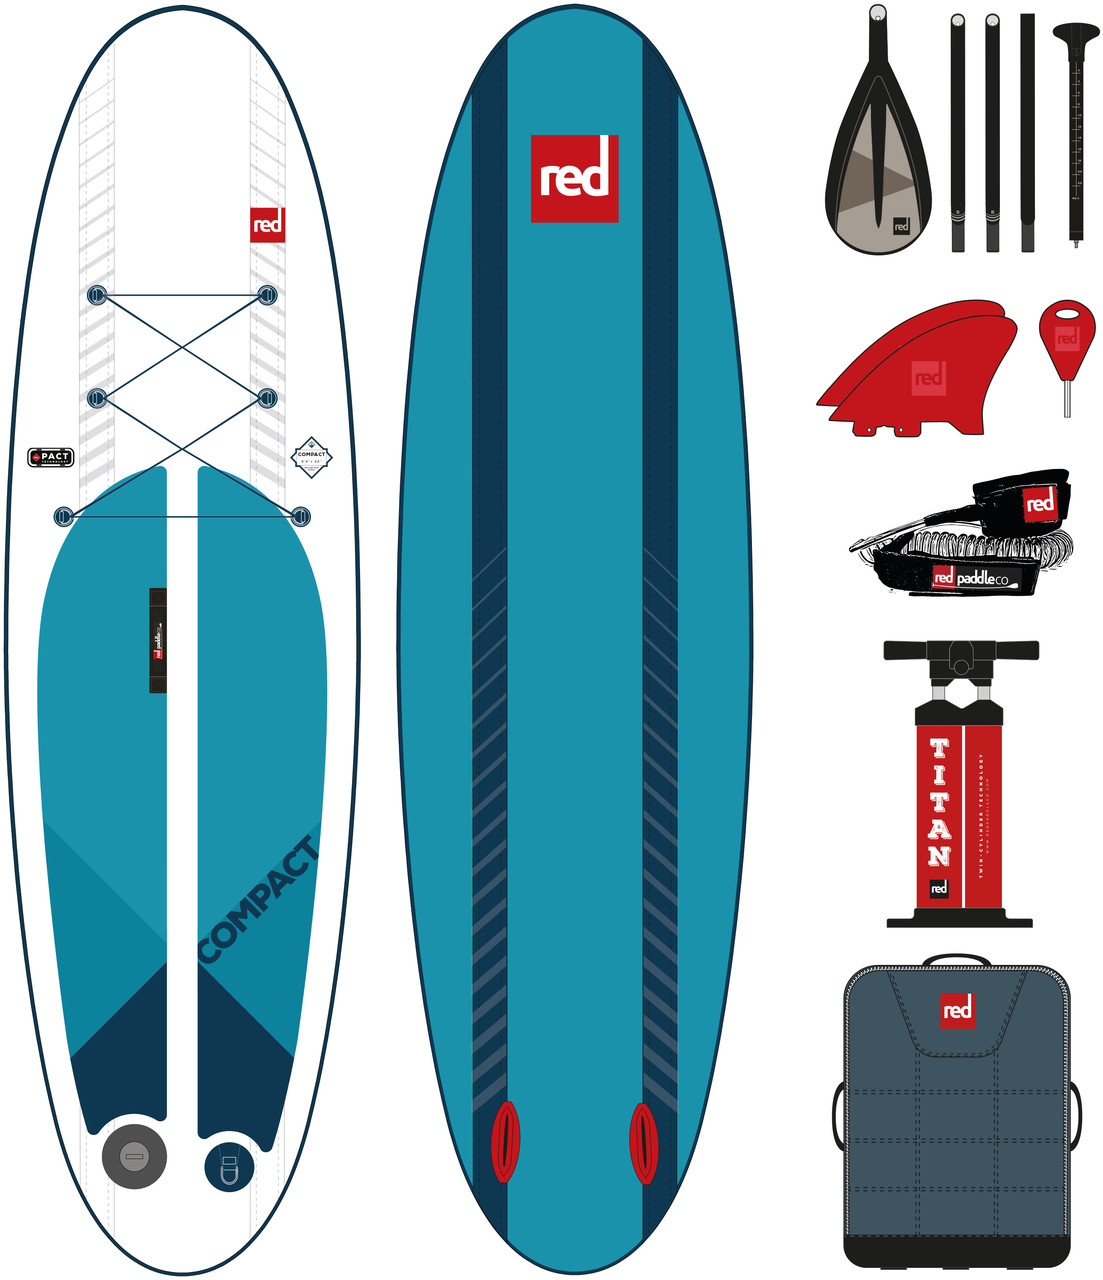 """Сапборд Red Paddle Co Compact 9'6"""" Package - надувная доска для САП серфинга, sup board"""